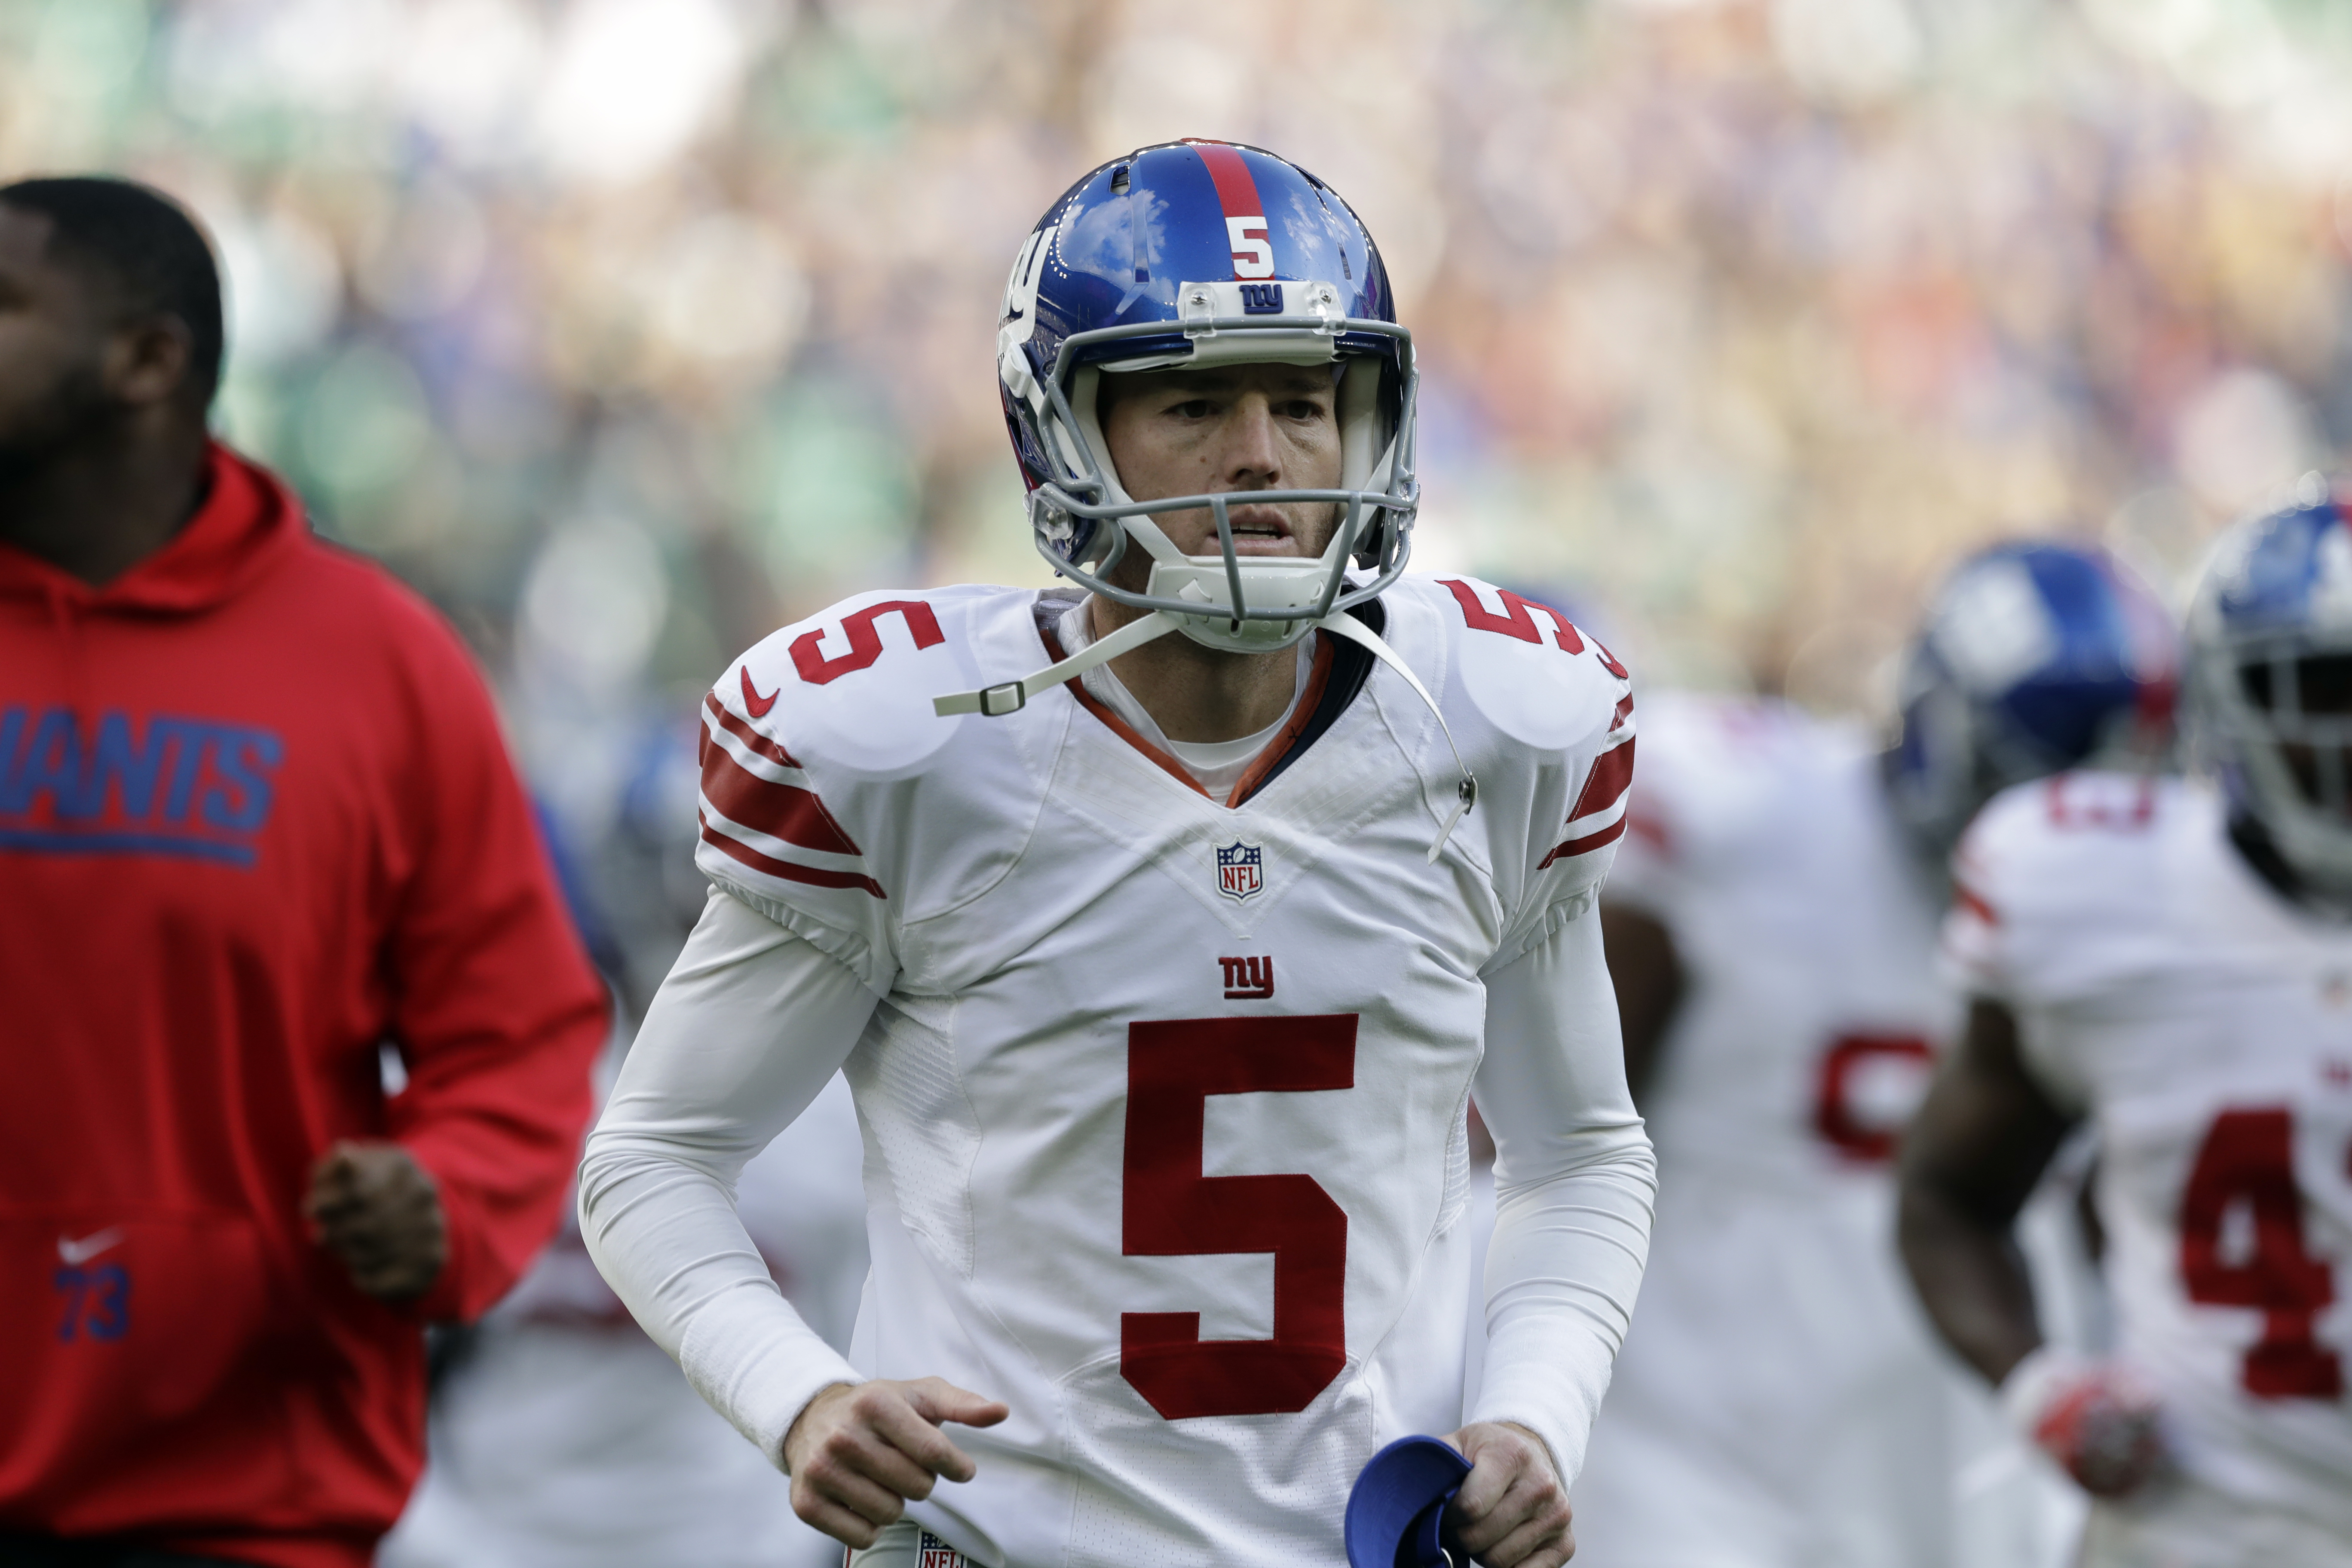 FILE -  In this Sunday, Oct. 23, 2016 file photo, New York Giants kicker Robbie Gould (5) runs on the field before an NFL football game between New York Giants and Los Angeles Rams at Twickenham stadium in London. Giants placekicker Robbie Gould is the Be